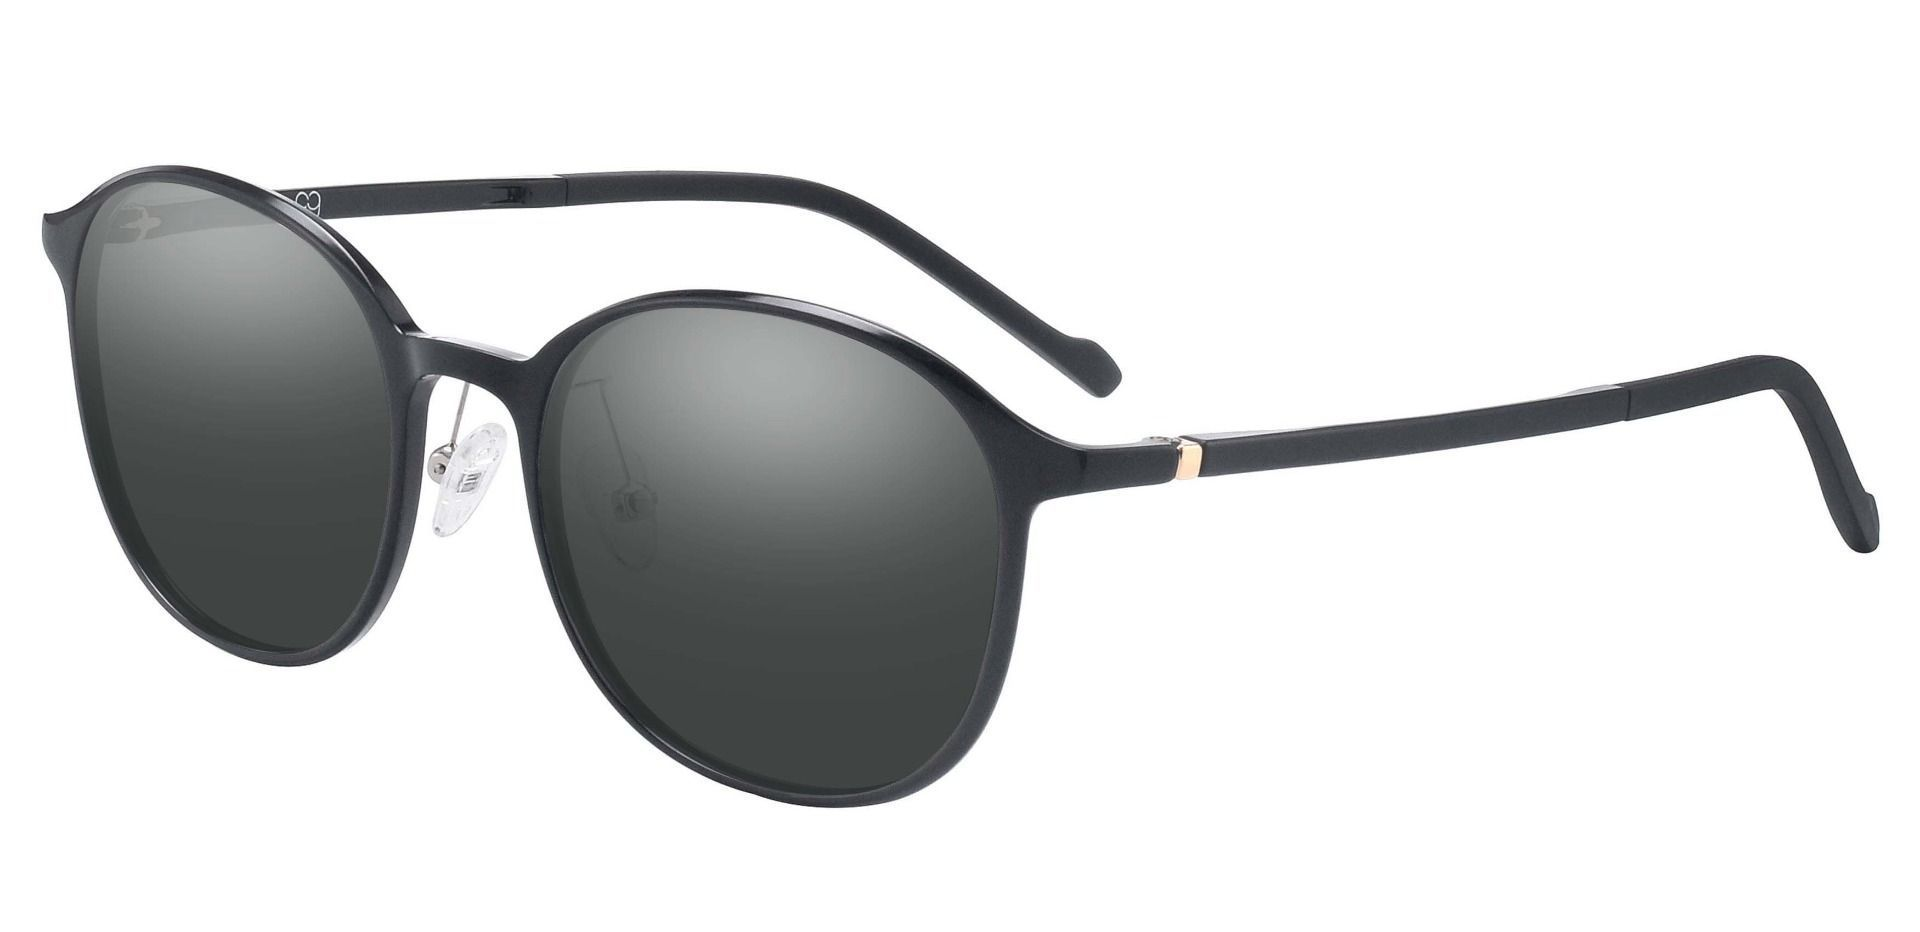 Stout Oval Prescription Sunglasses - Black Frame With Gray Lenses